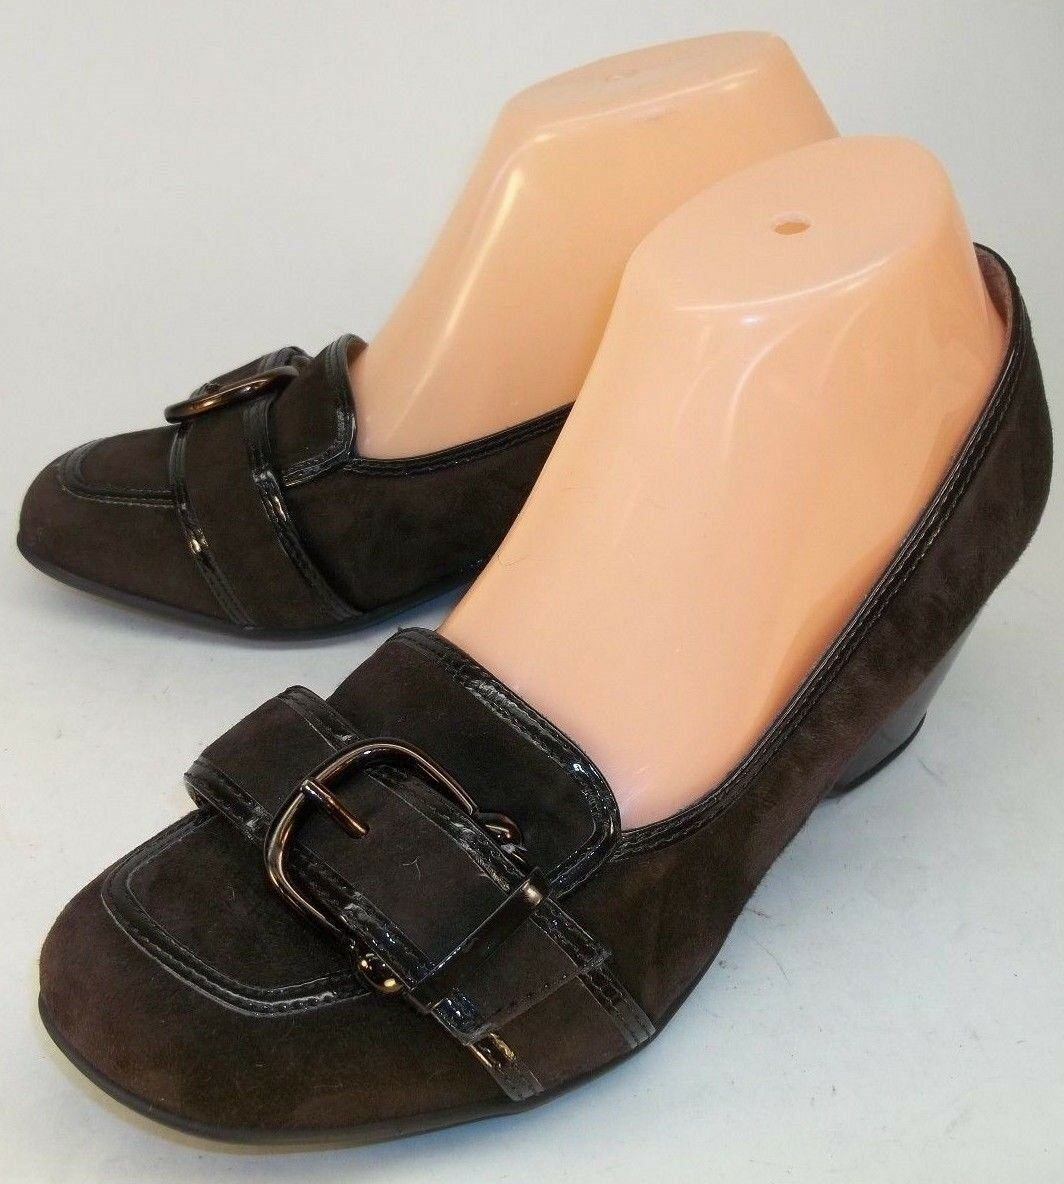 Euro Soft x Sofft Wo's US 8M Brown Suede Slip-On Buckle Loafer Wedge Heel shoes